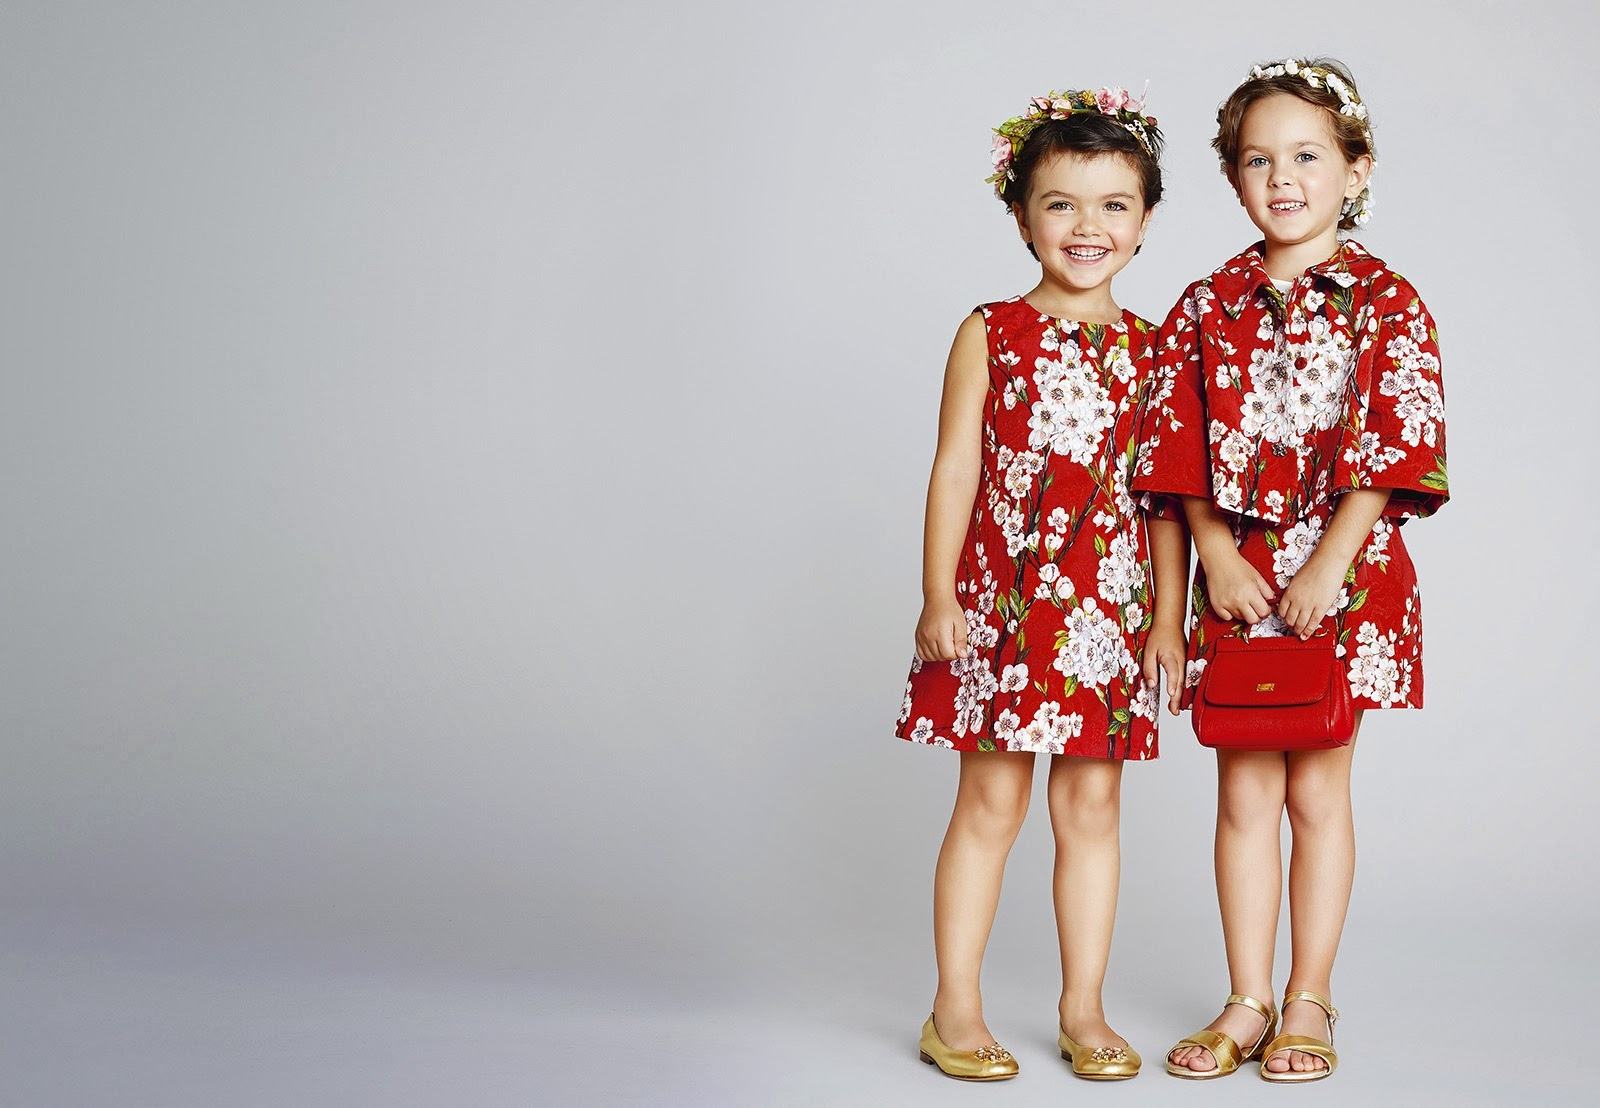 ss 2014 for kids